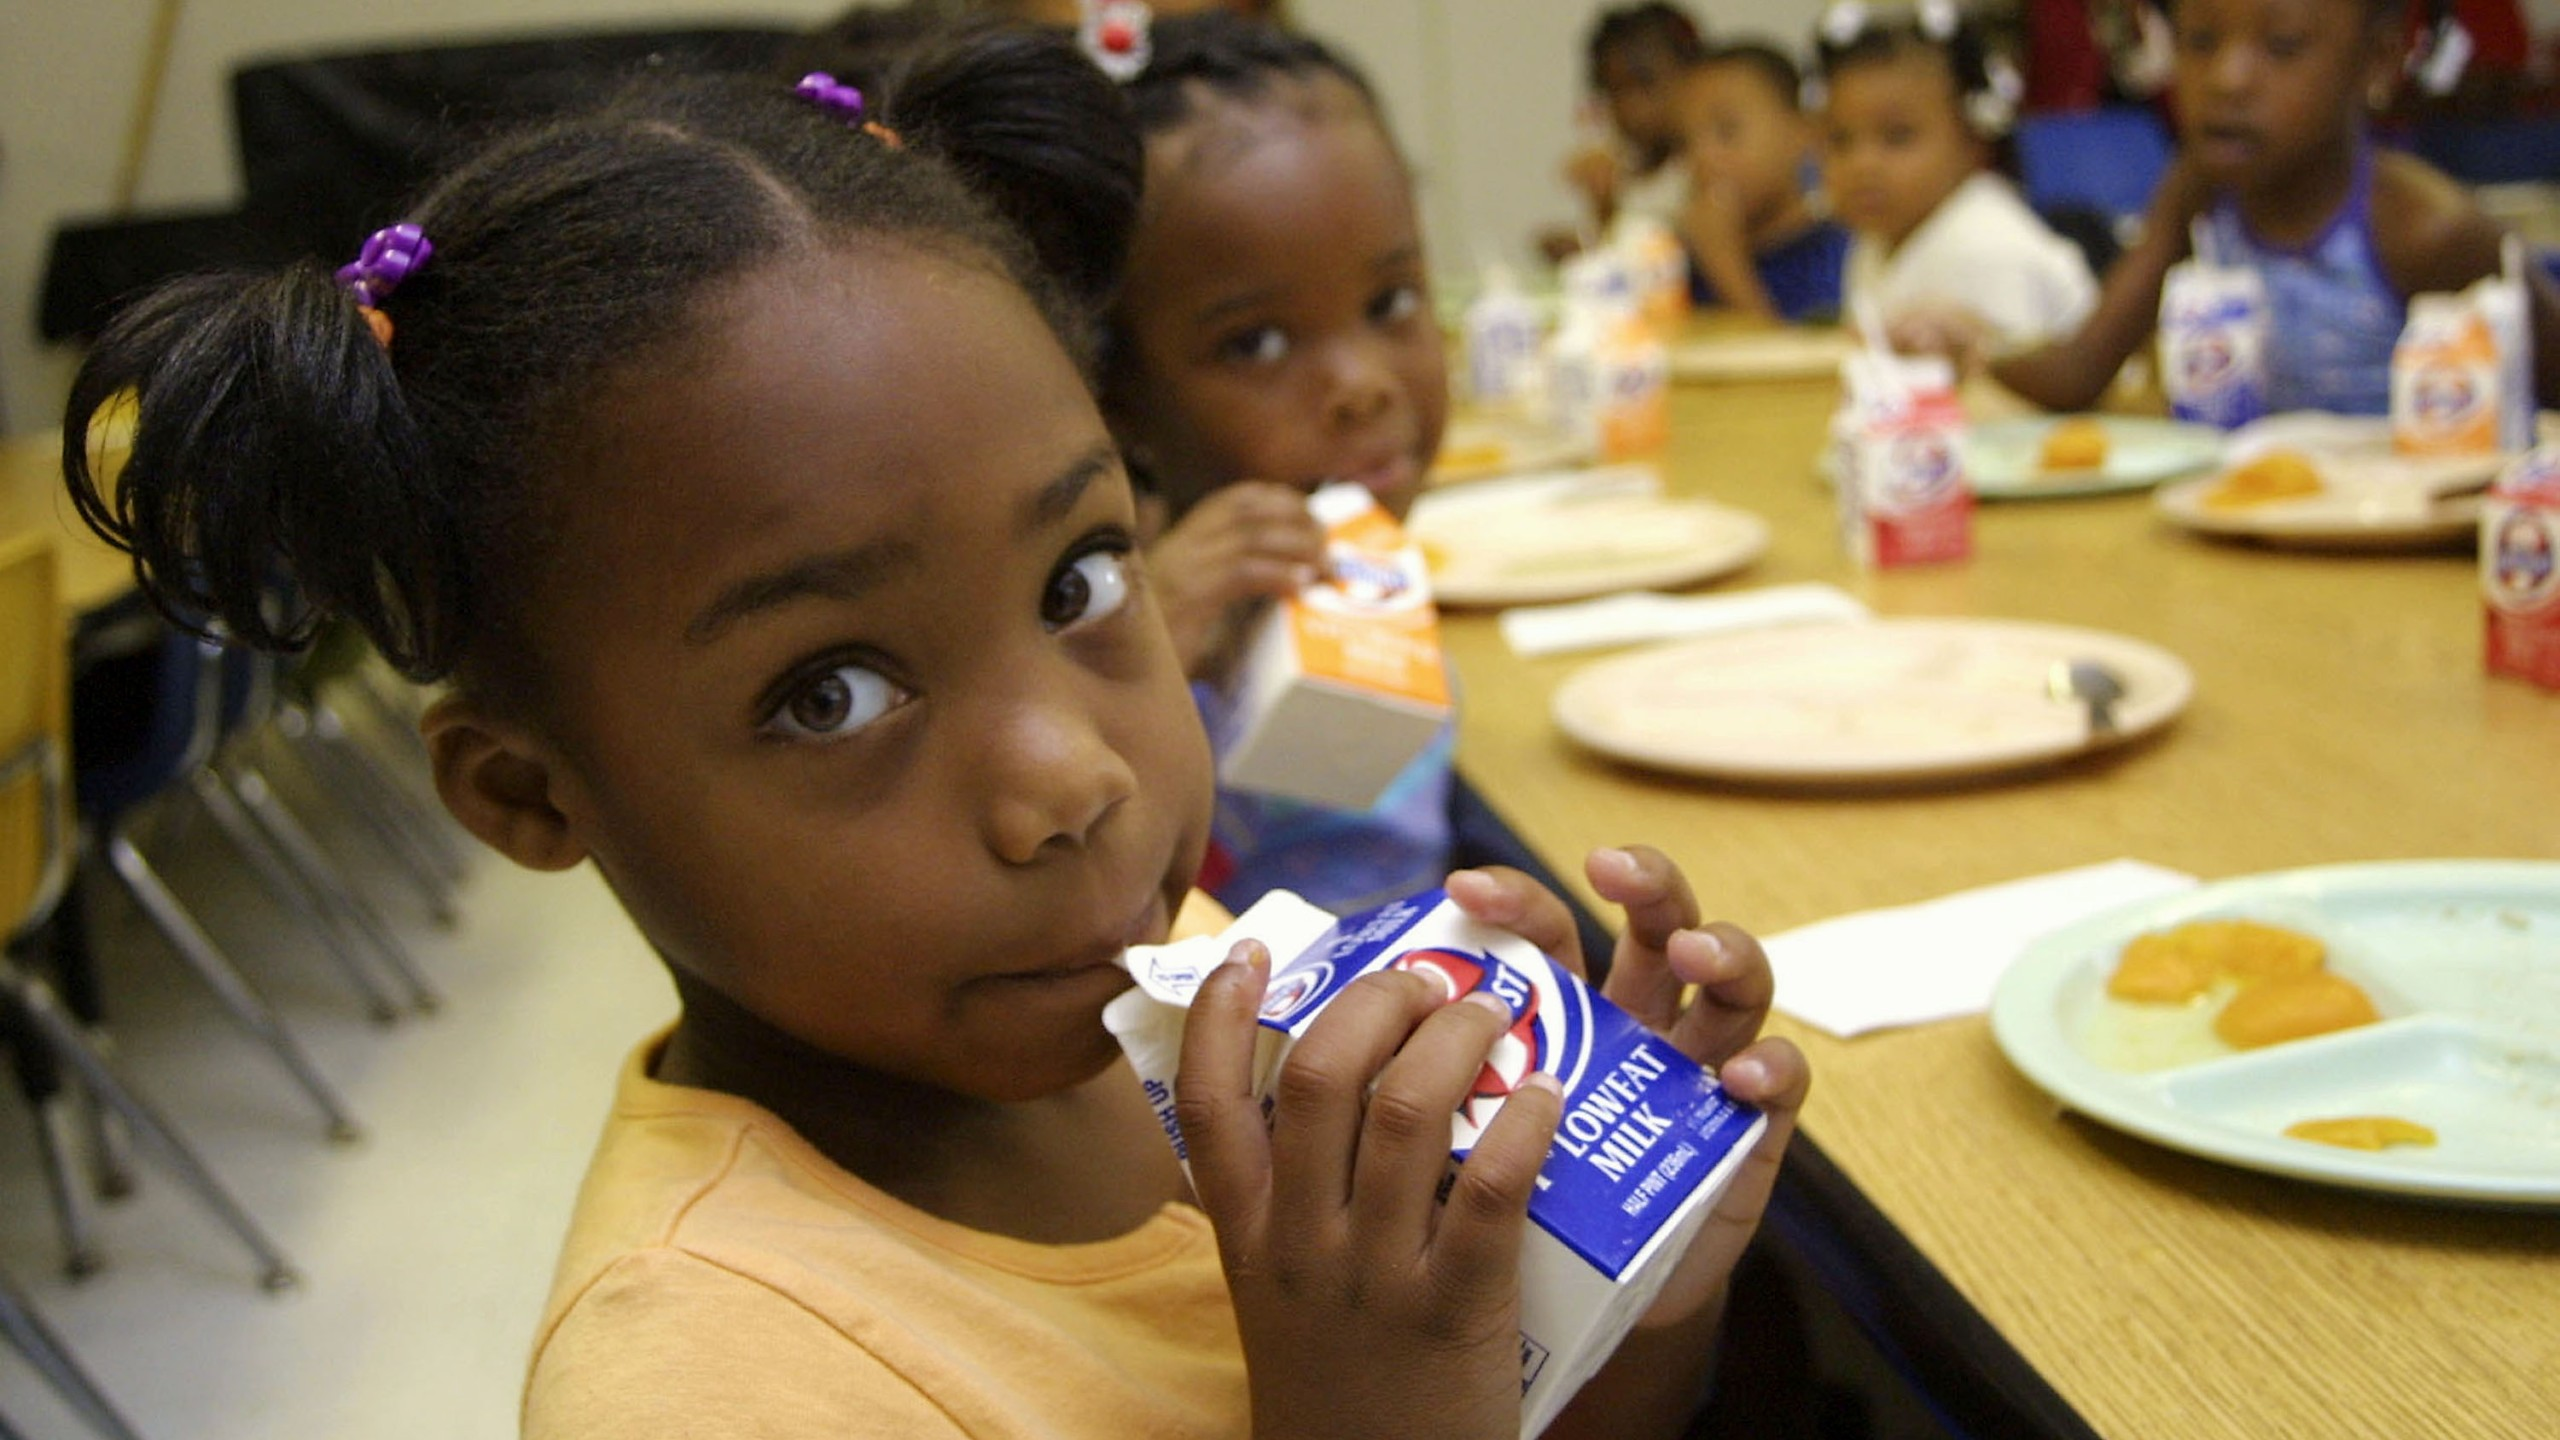 Dhaija Smith, 4, finishes her milk during breakfast with her classmates at the Brown E. Moore Head Start Center on July 22, 2003, in Shreveport, Louisiana. (Credit: Mario Villafuerte / Getty Images)